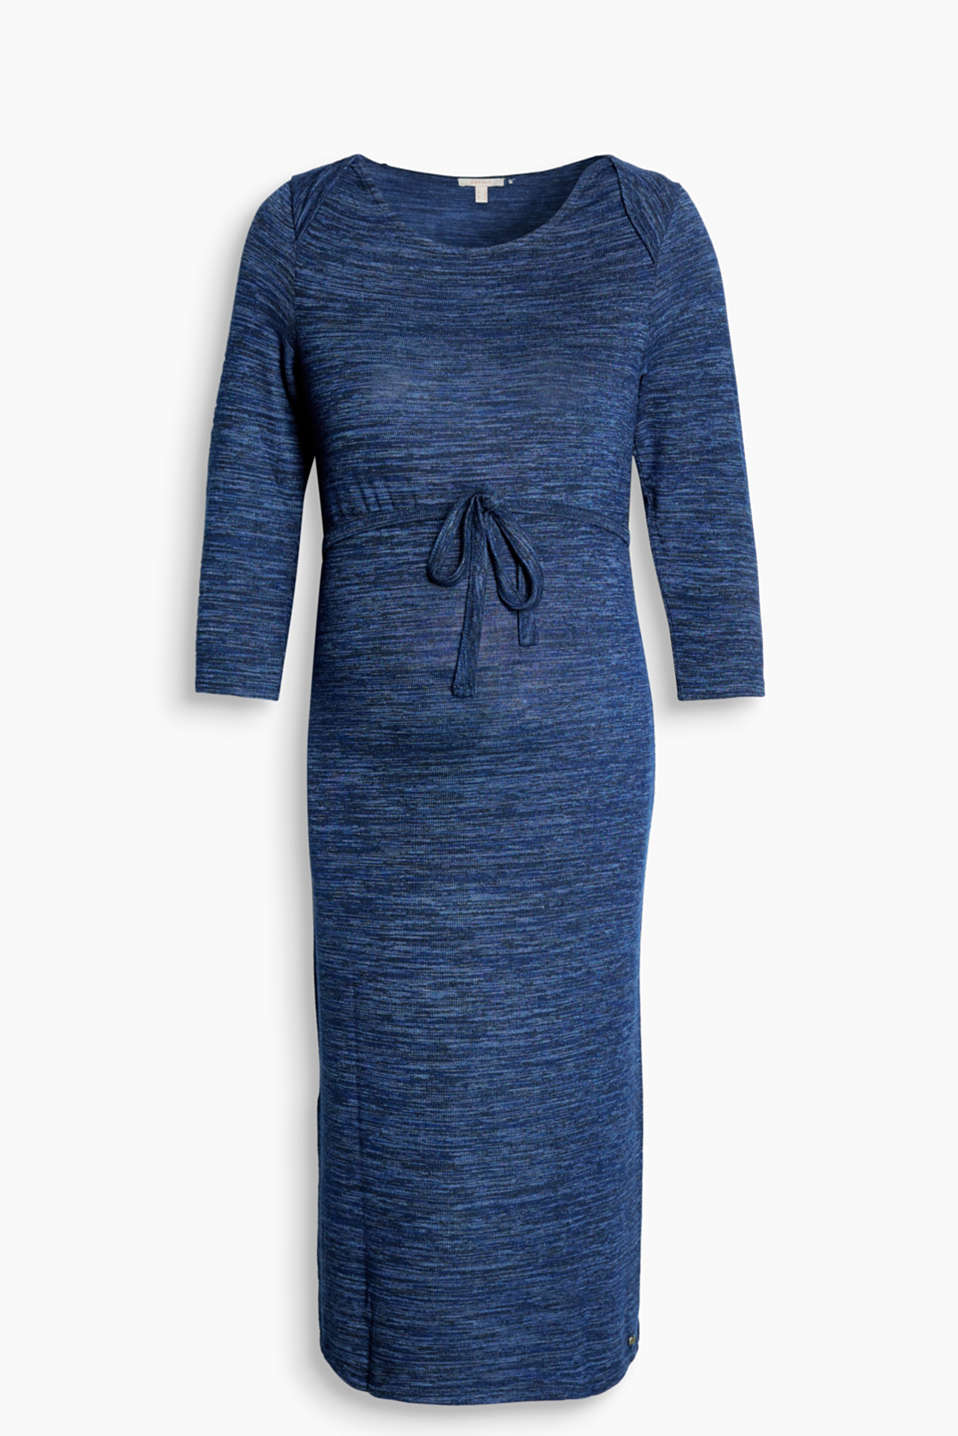 Melange jersey dress with bolero shoulders, a tie-around belt and high hem slits